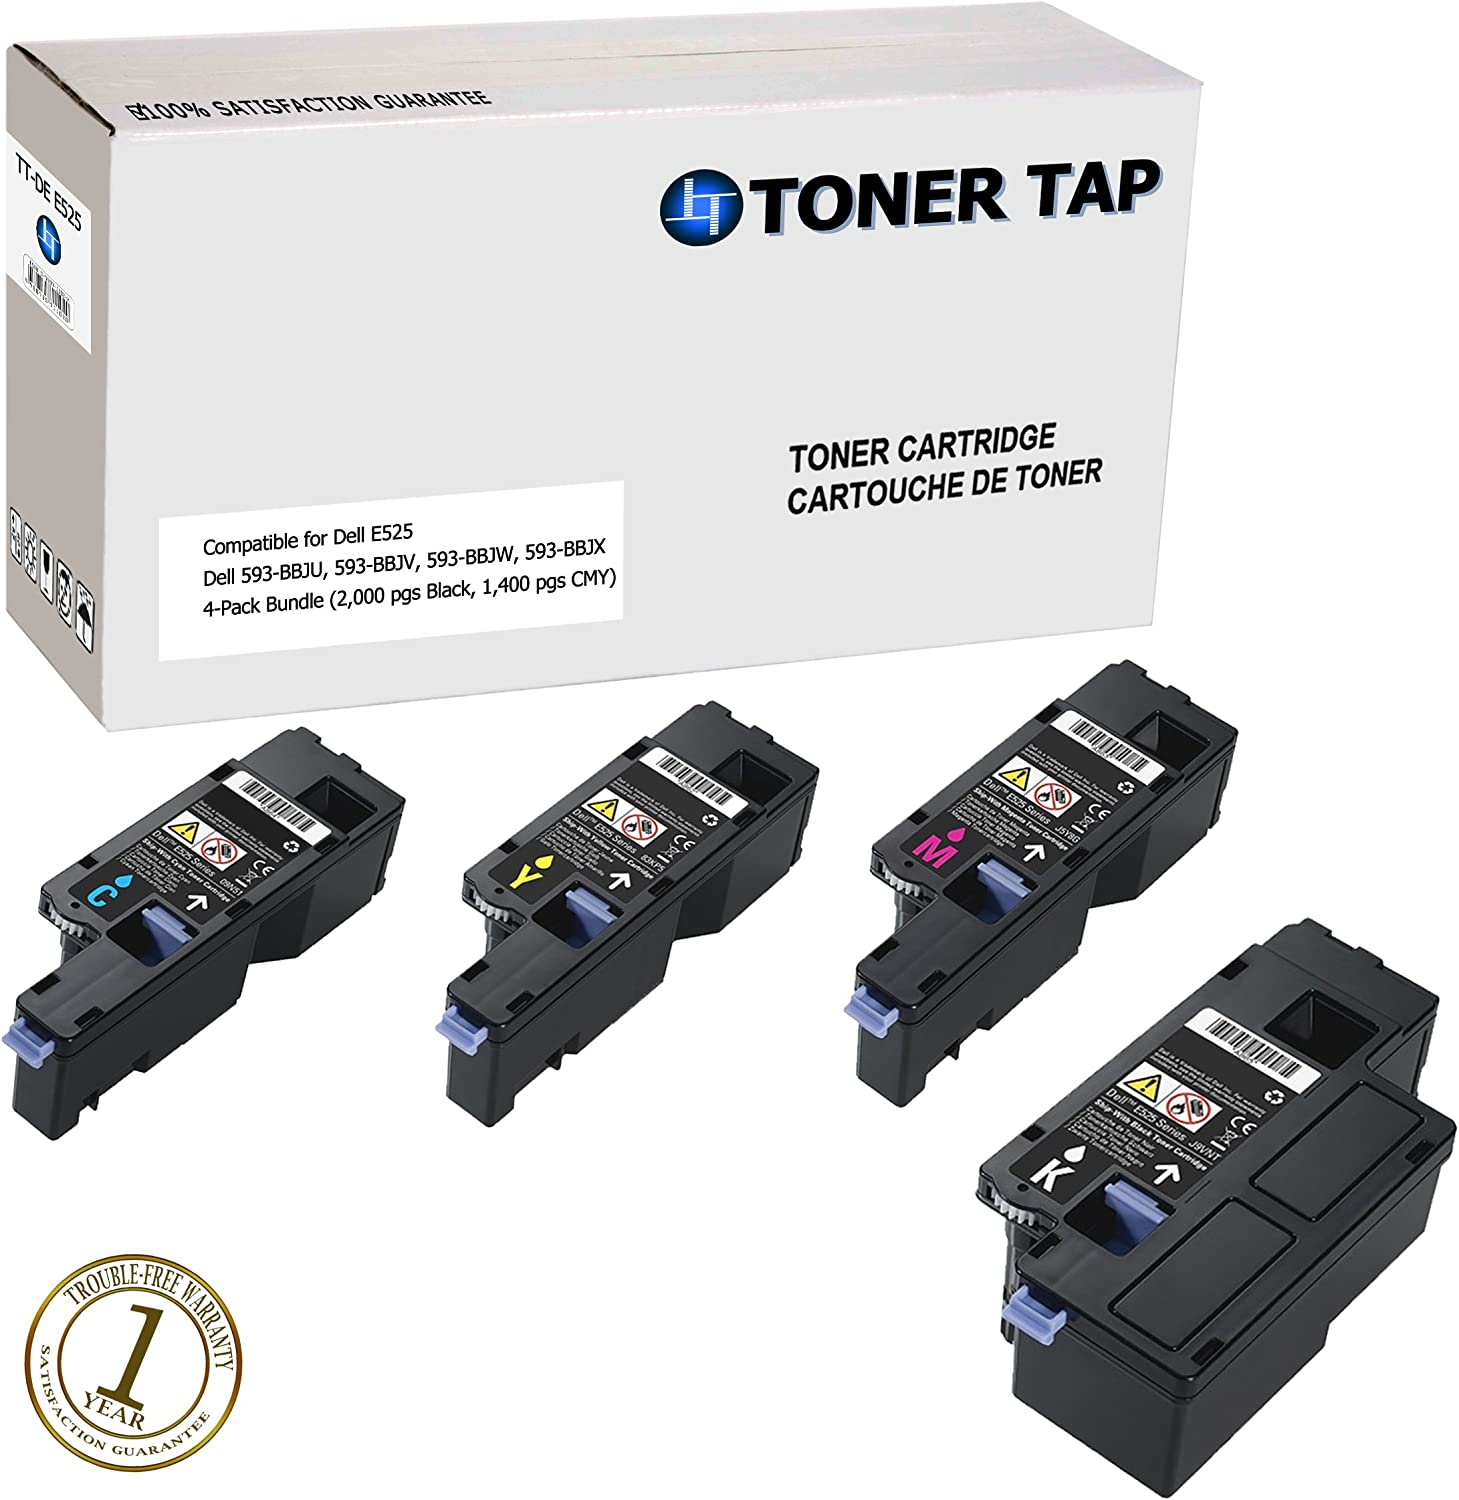 4 Pack Toner Tap Dell E525W Compatible Toner Set for Dell E525W Color Laser All-in-One Multifunction Wireless and Cloud Ready Printer